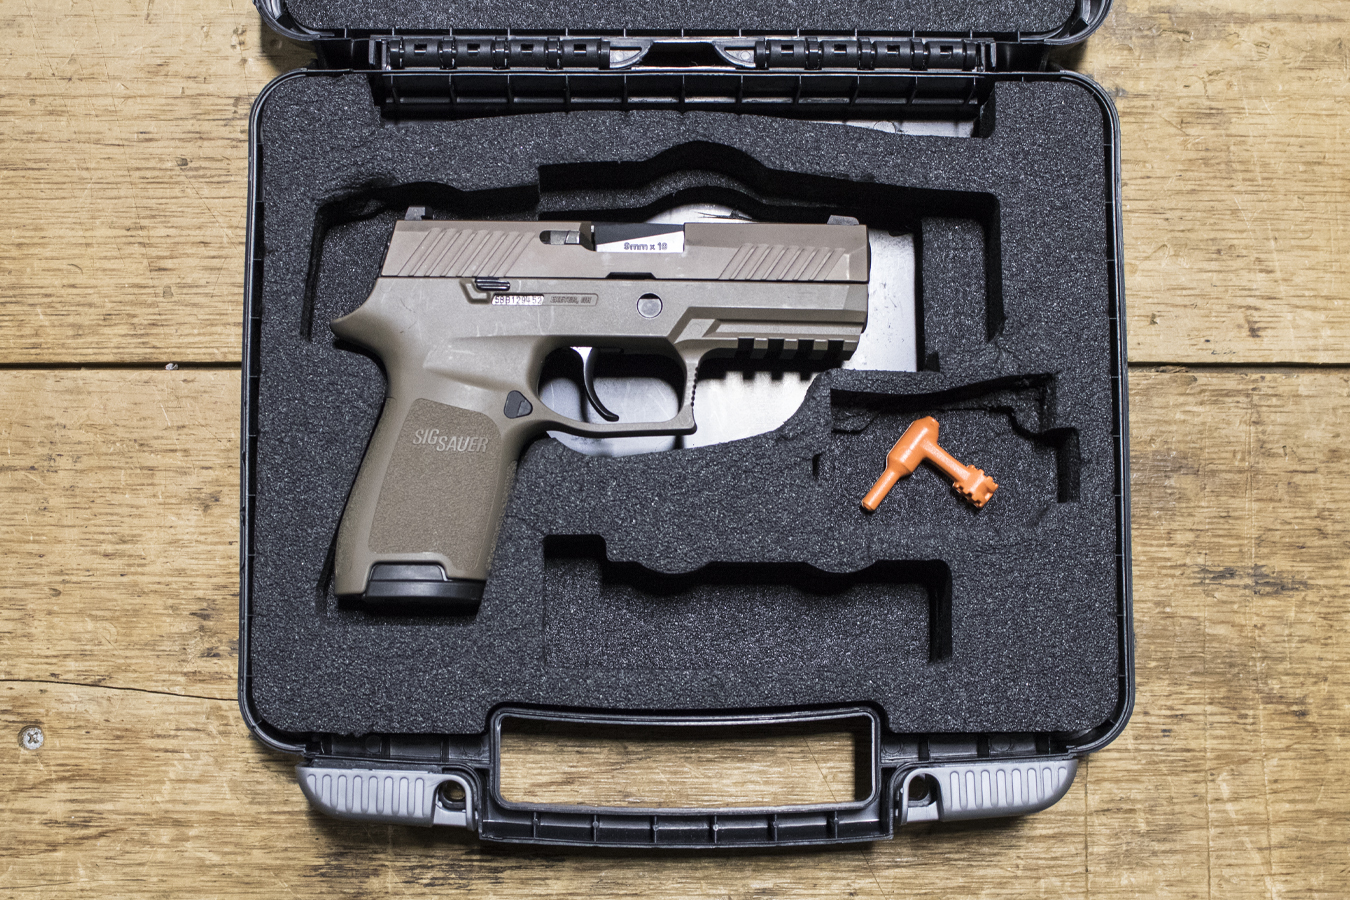 P320 Compact 9mm Flat Dark Earth Police Trade-in Pistols with Night Sights  (Very Good Condition)